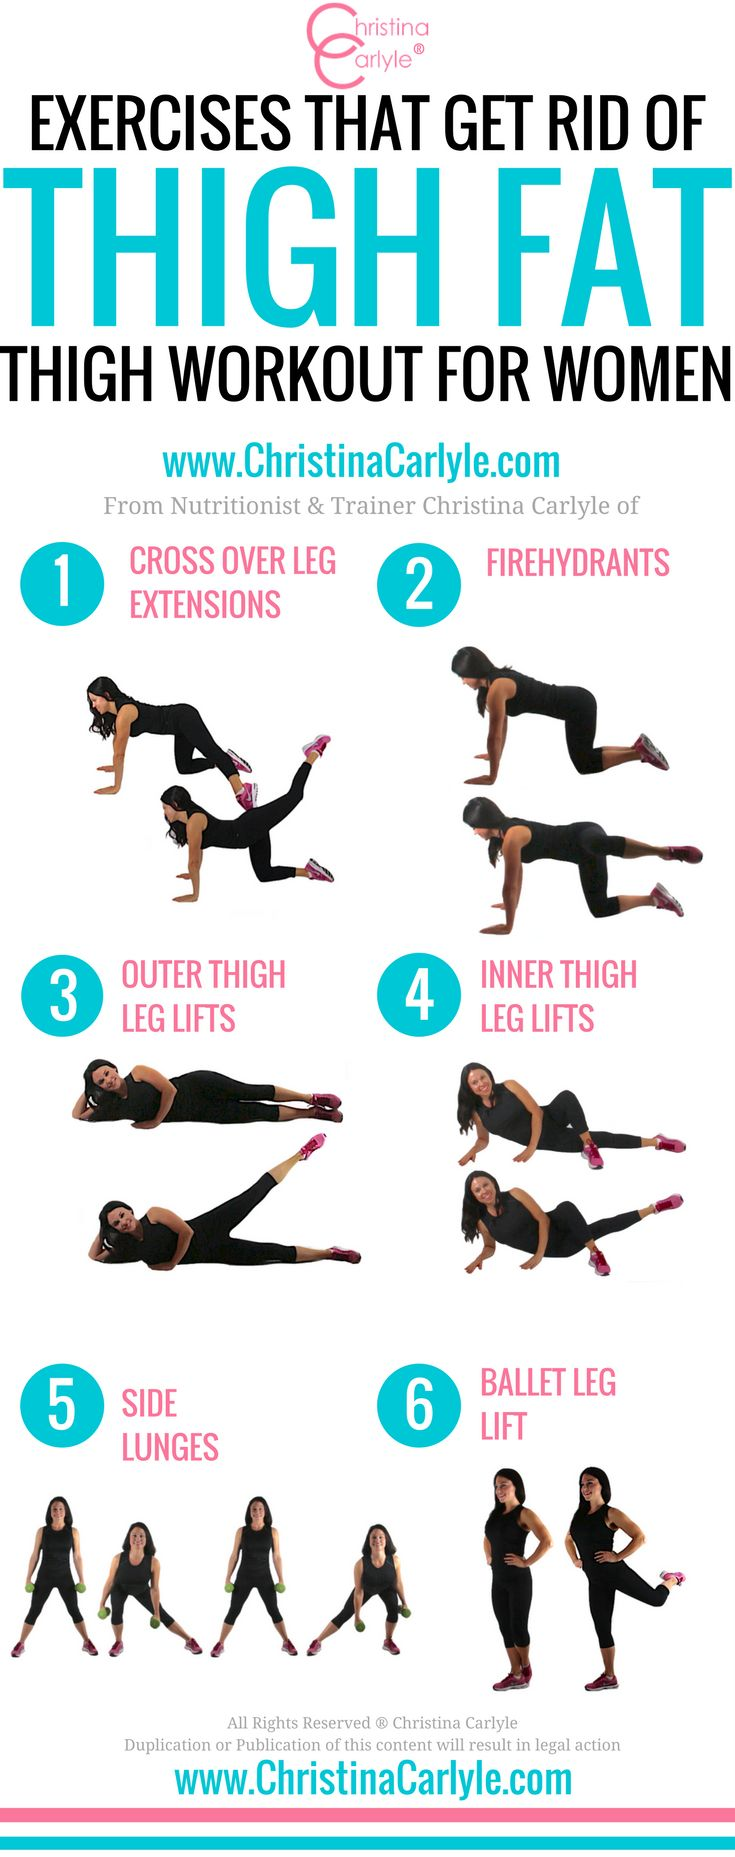 Exercises that Get Rid of Thigh Fat and a complete fat burning thigh workout from nutritionist and trainer Christina Carlyle. #thighworkout #fitness